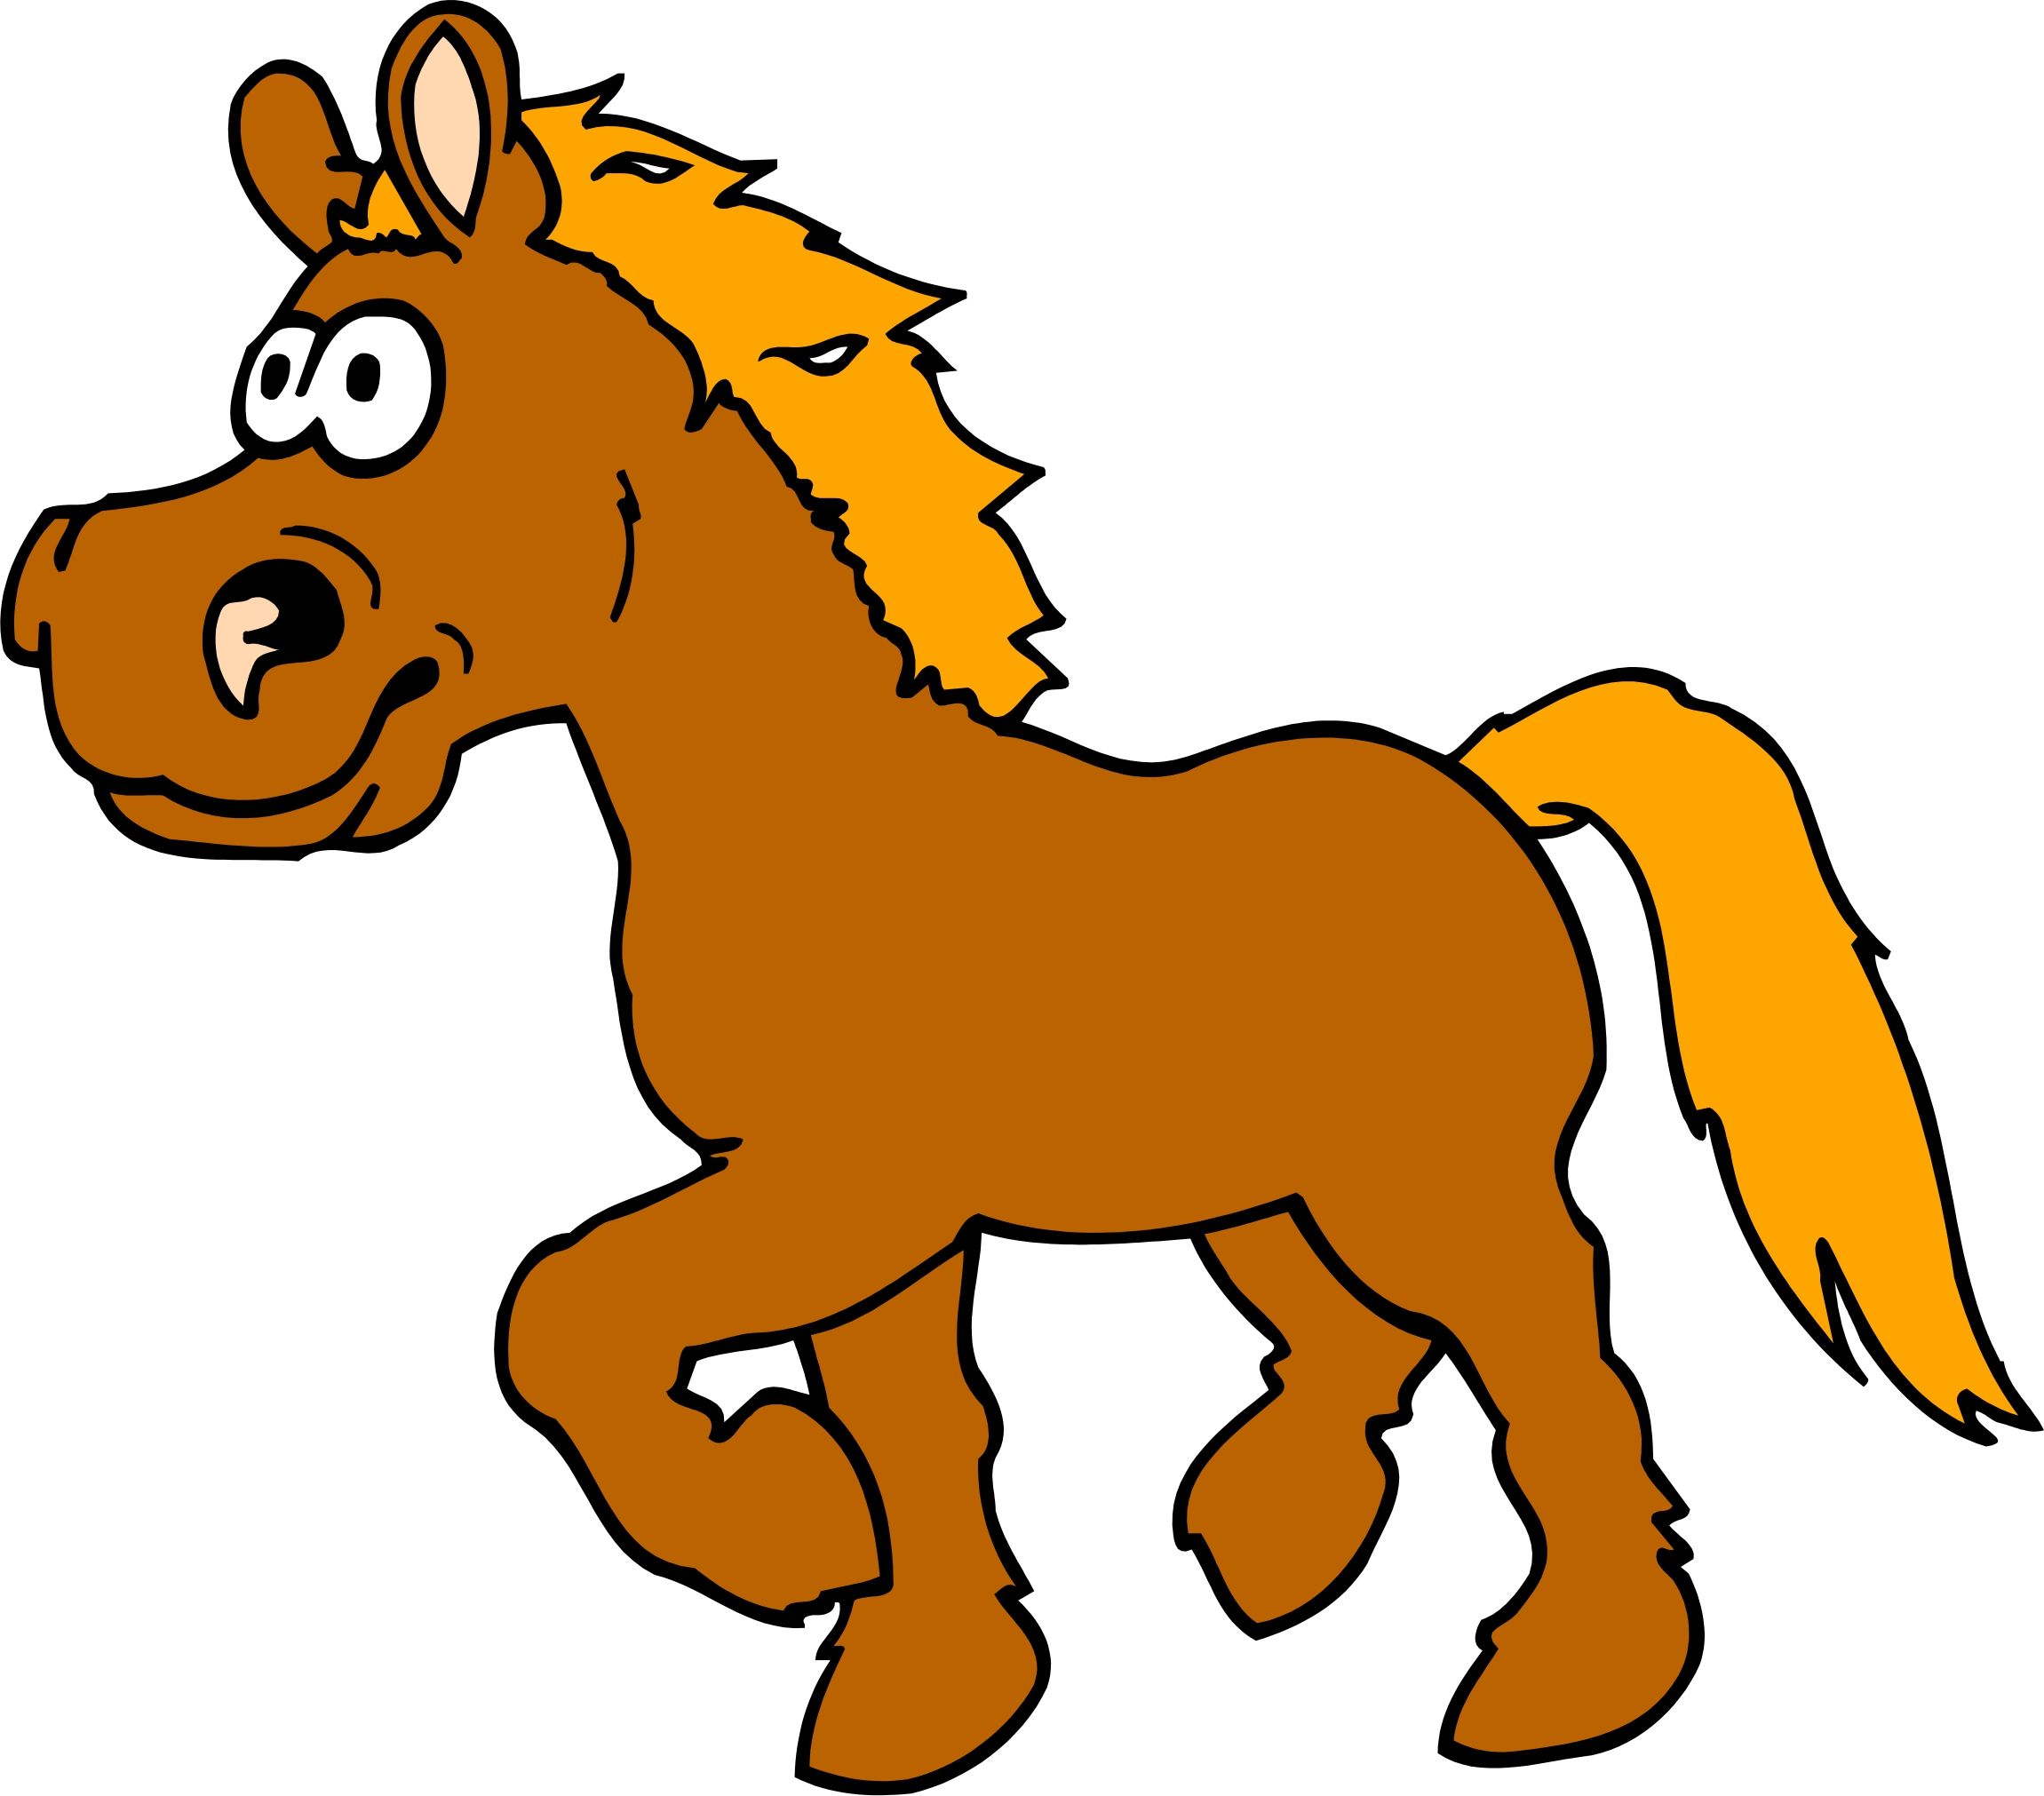 Free Cartoon Horses Images, Download Free Clip Art, Free.